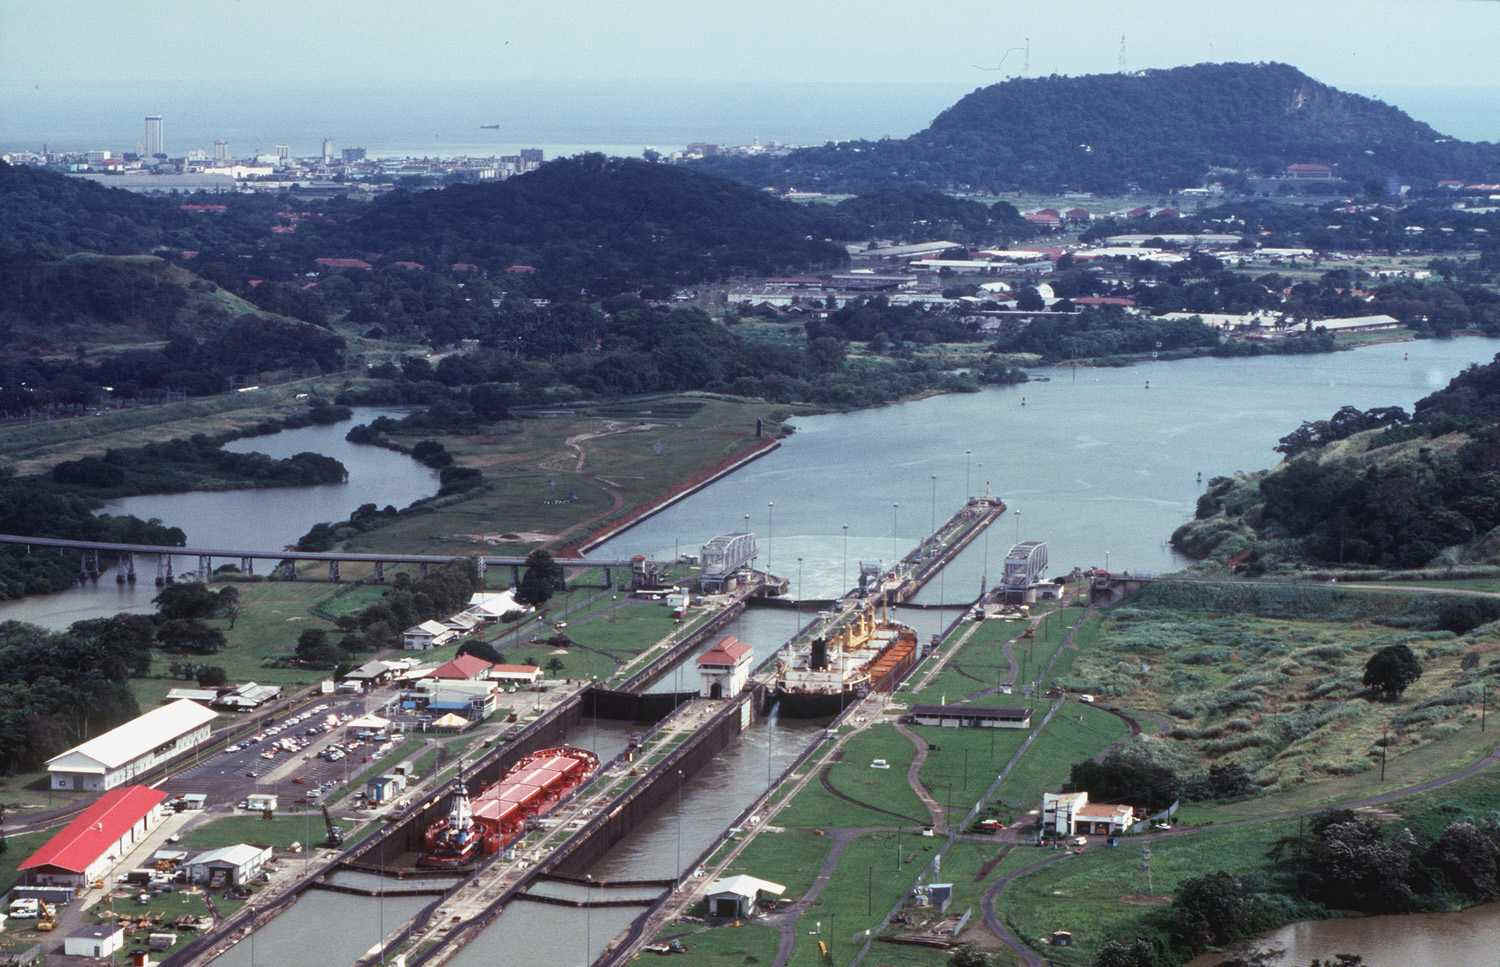 Panama Canal's Miraflores Locks (before 2000), the first set of locks for ships entering the Canal from the Pacific -- Albrook area and Ancon Hill in the right background; part of Panama City in distant left background  [Photo courtesy of Panama Canal Authority from its website, www.pancanal.com]